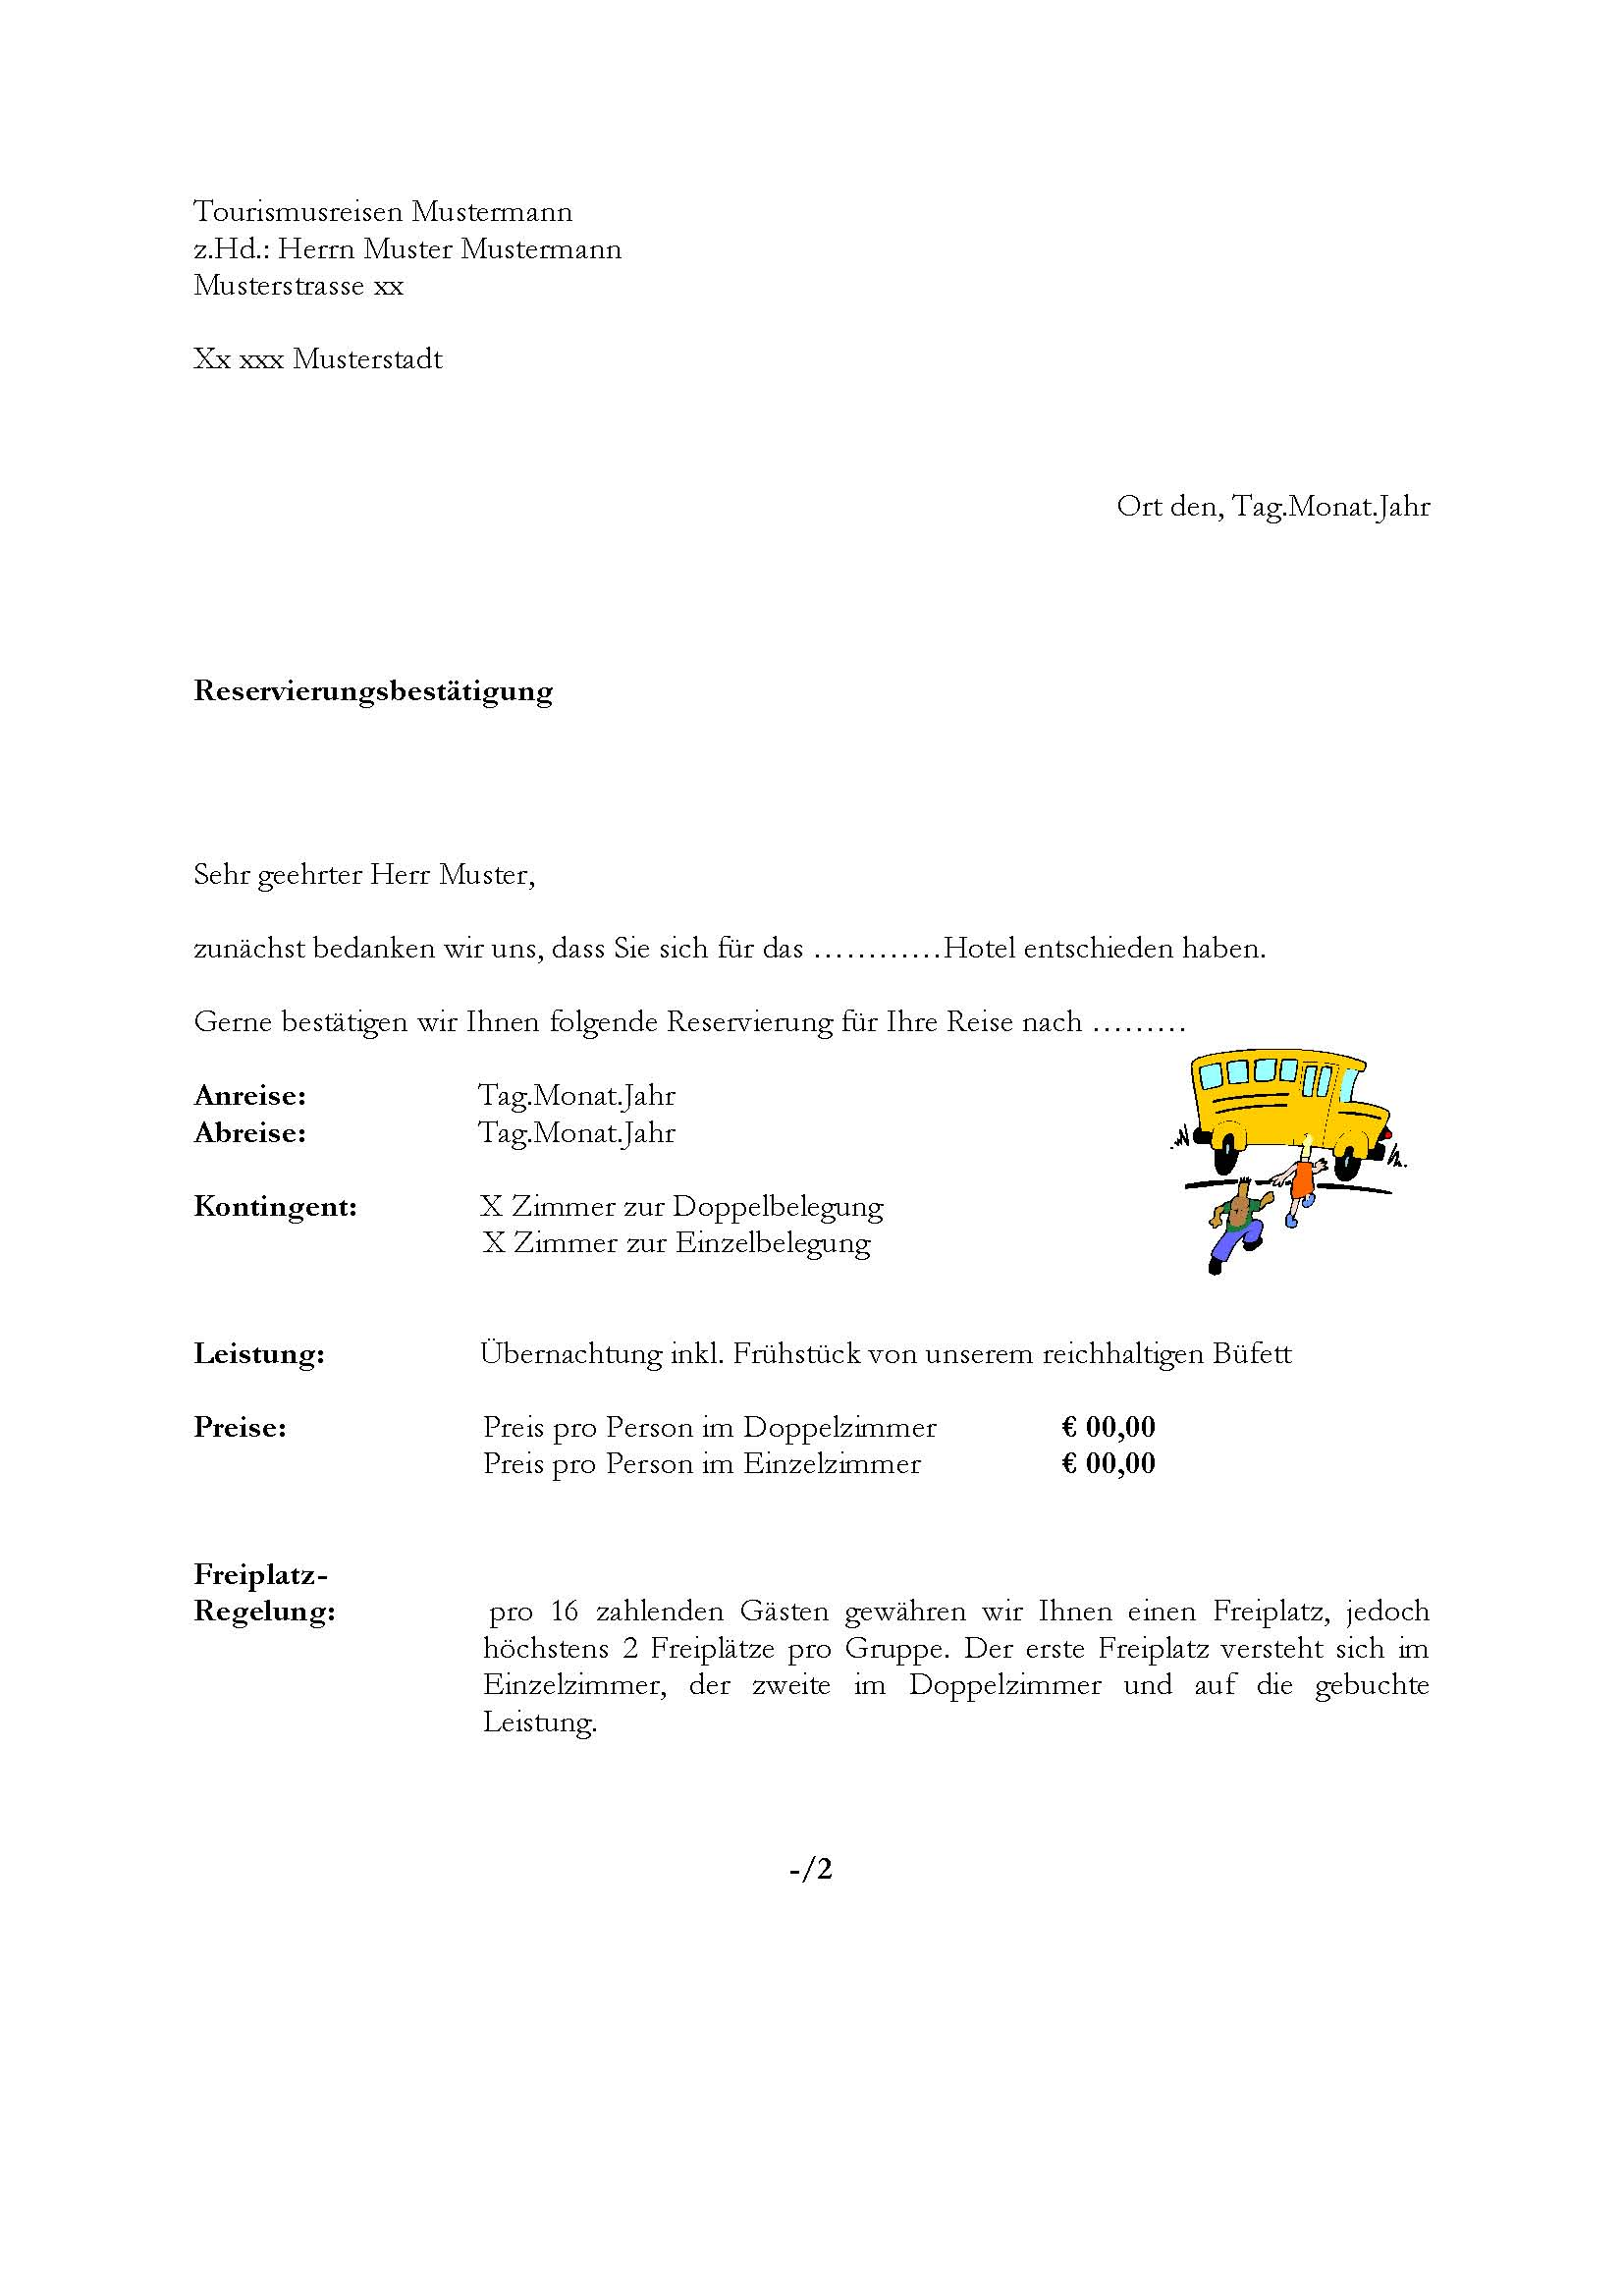 Charmant Buchungsbestätigungsvorlage Fotos - Entry Level Resume ...